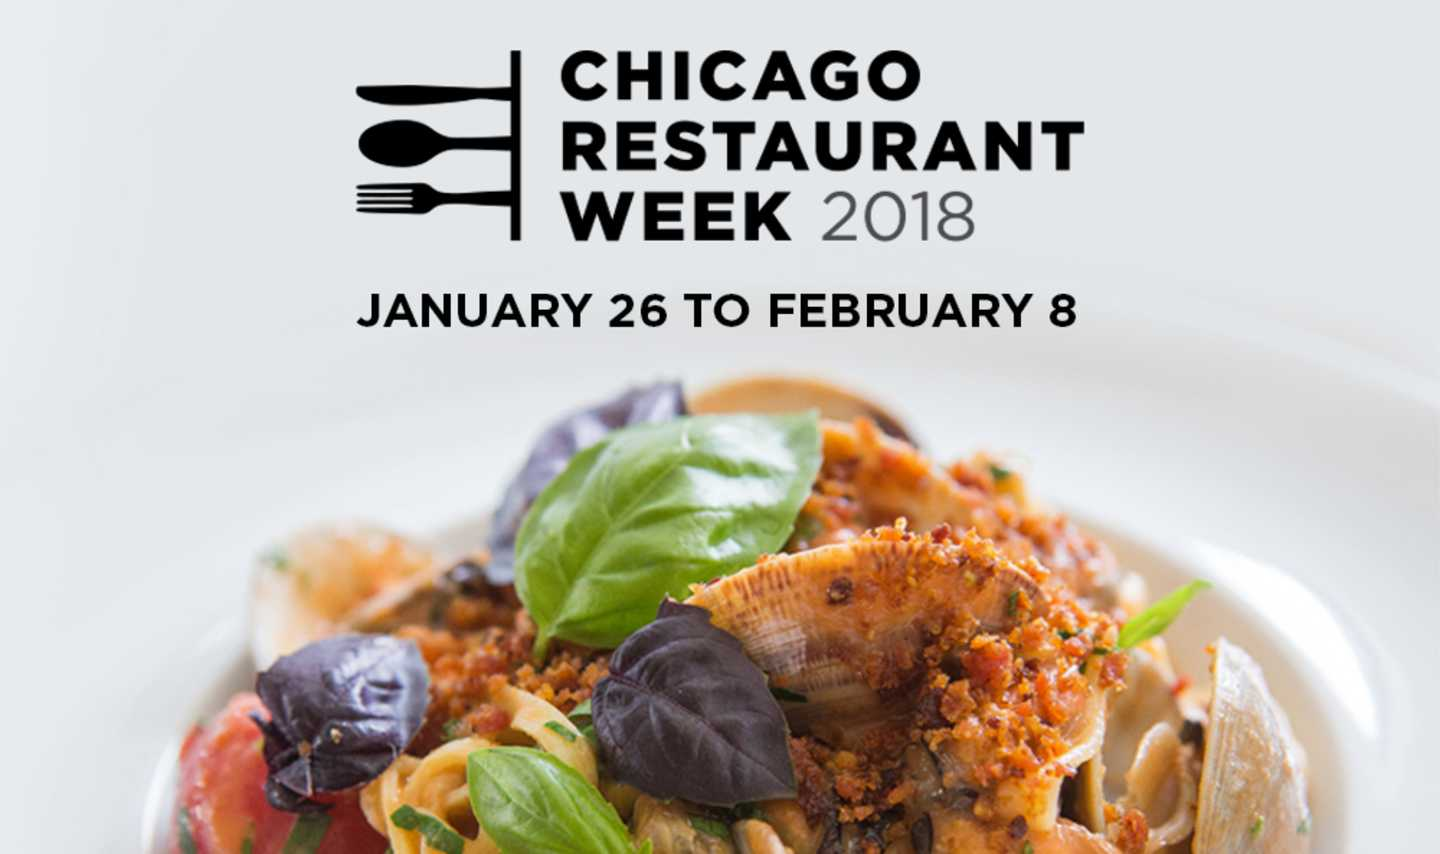 Chicago Restaurant Week - January 26 - February 8 - Chicago, IL ...